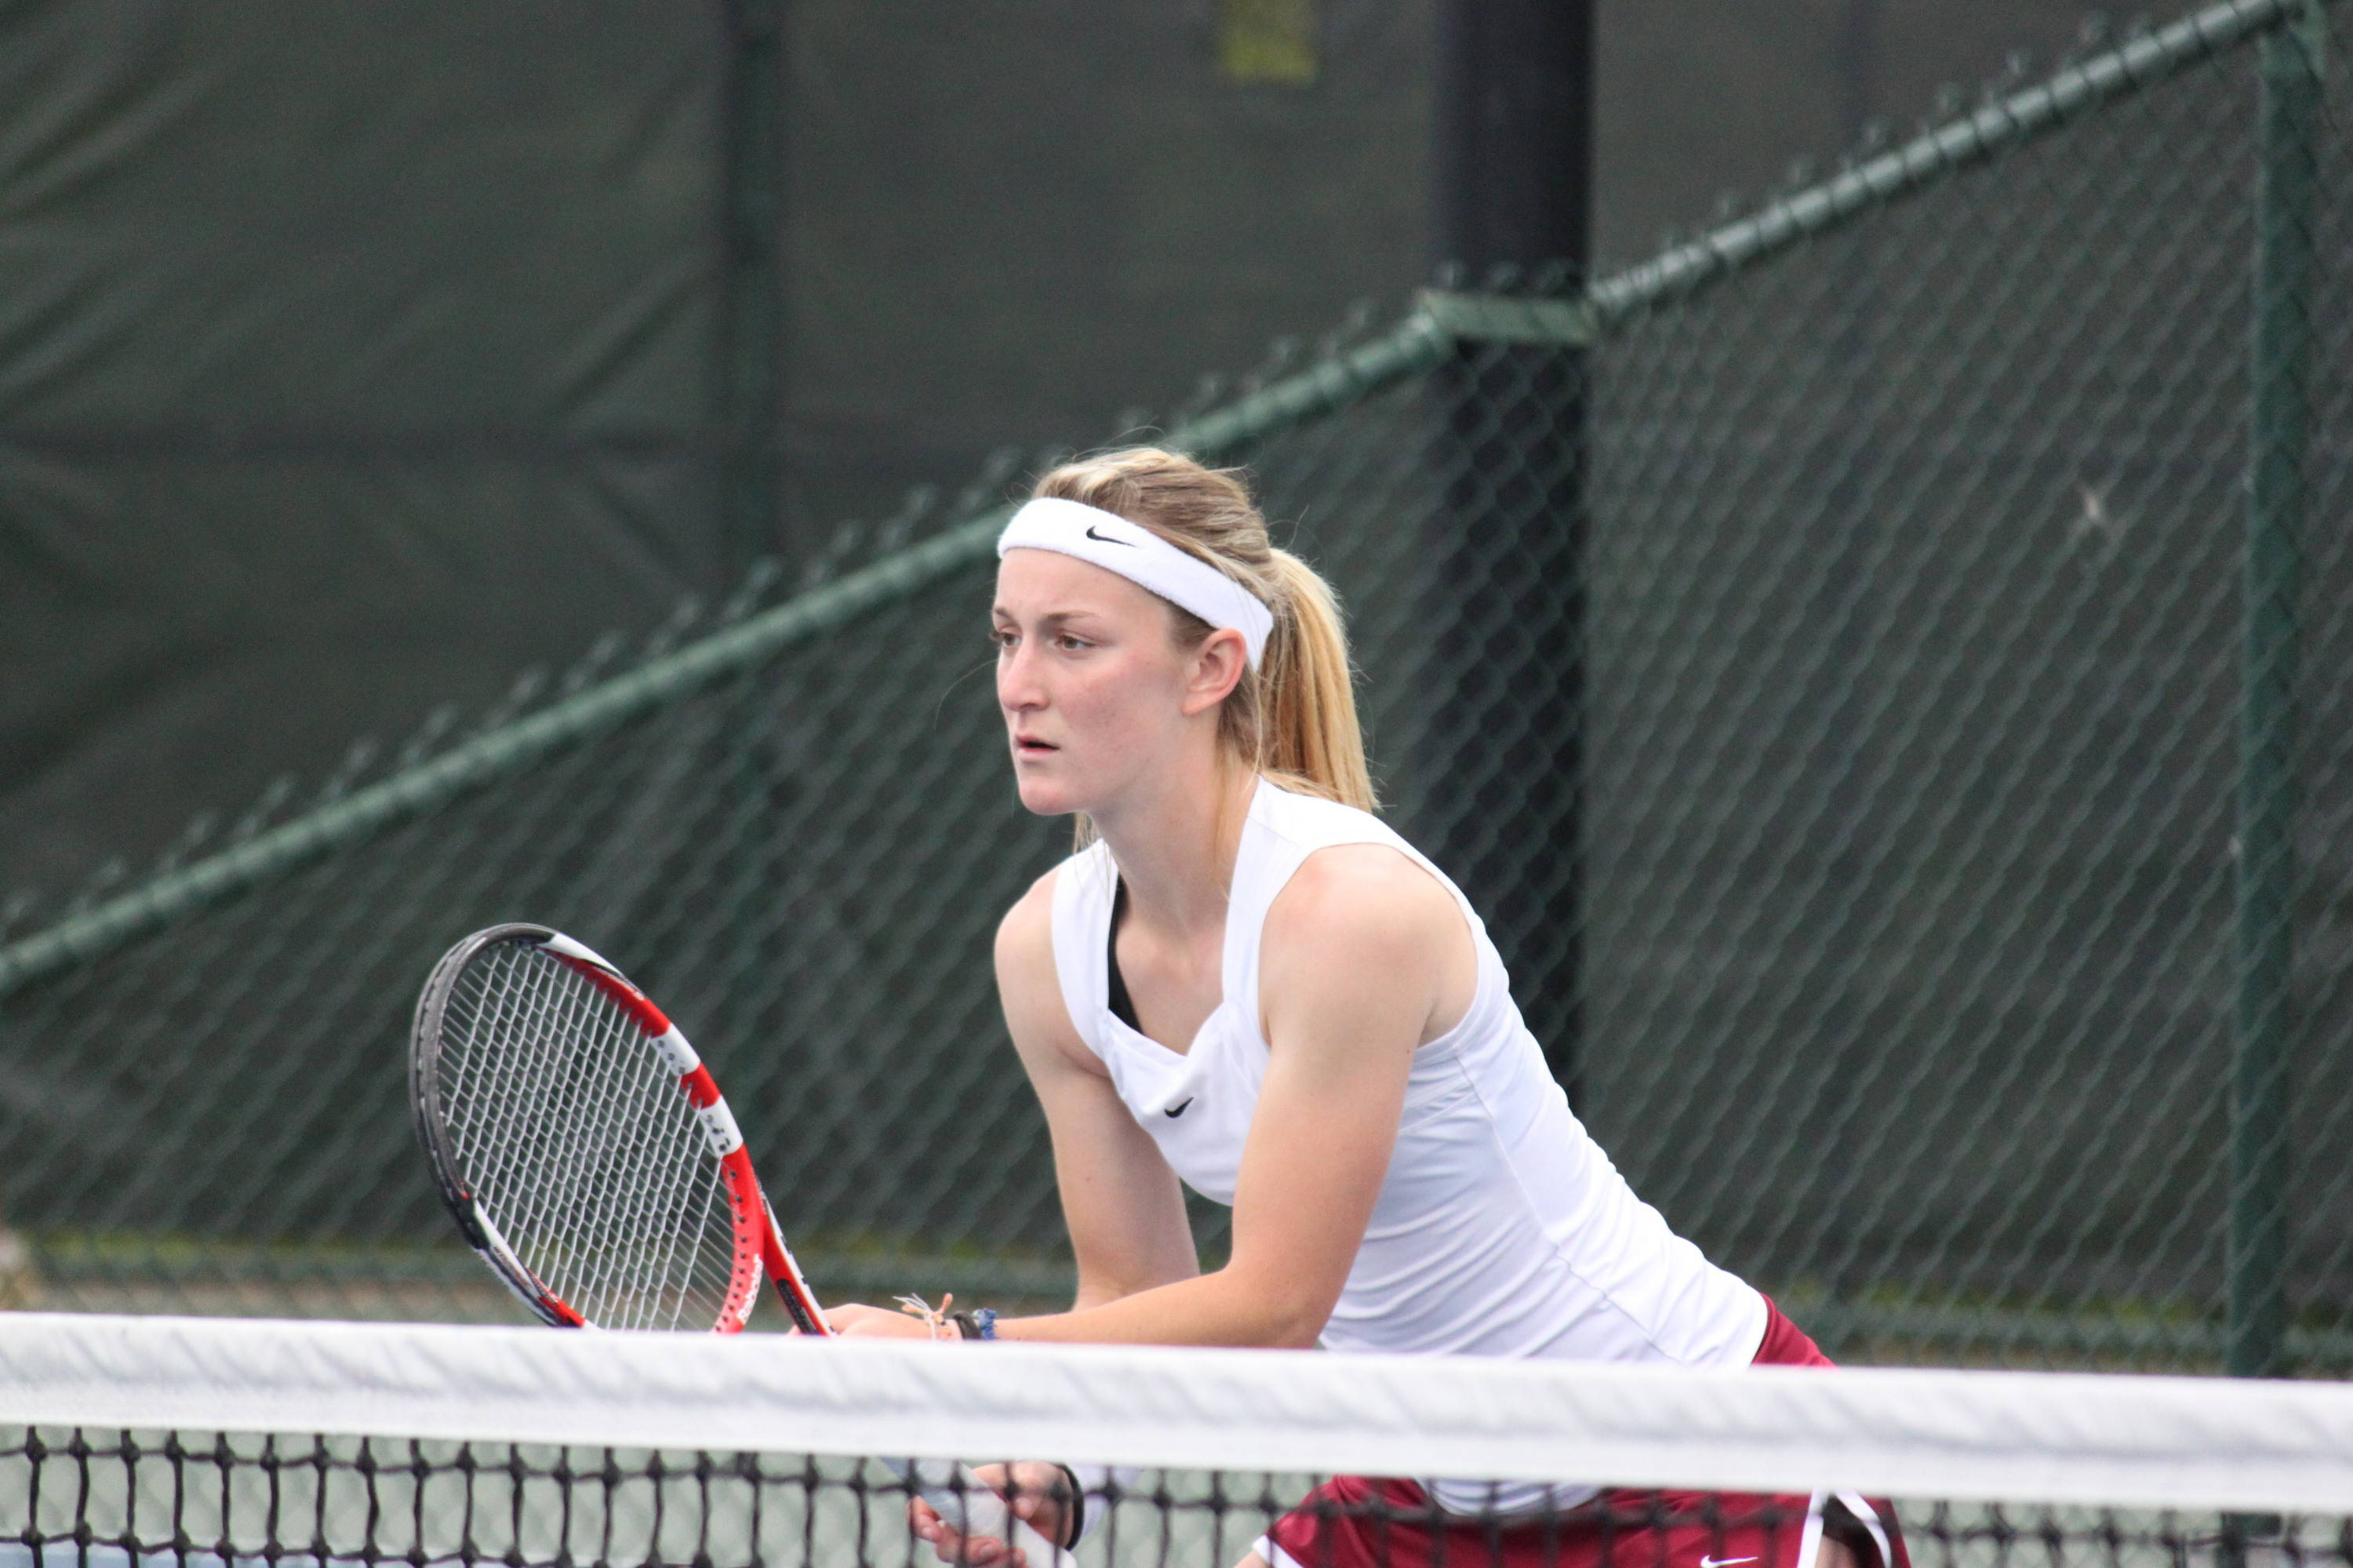 Ruth Seaborne at the net in doubles.